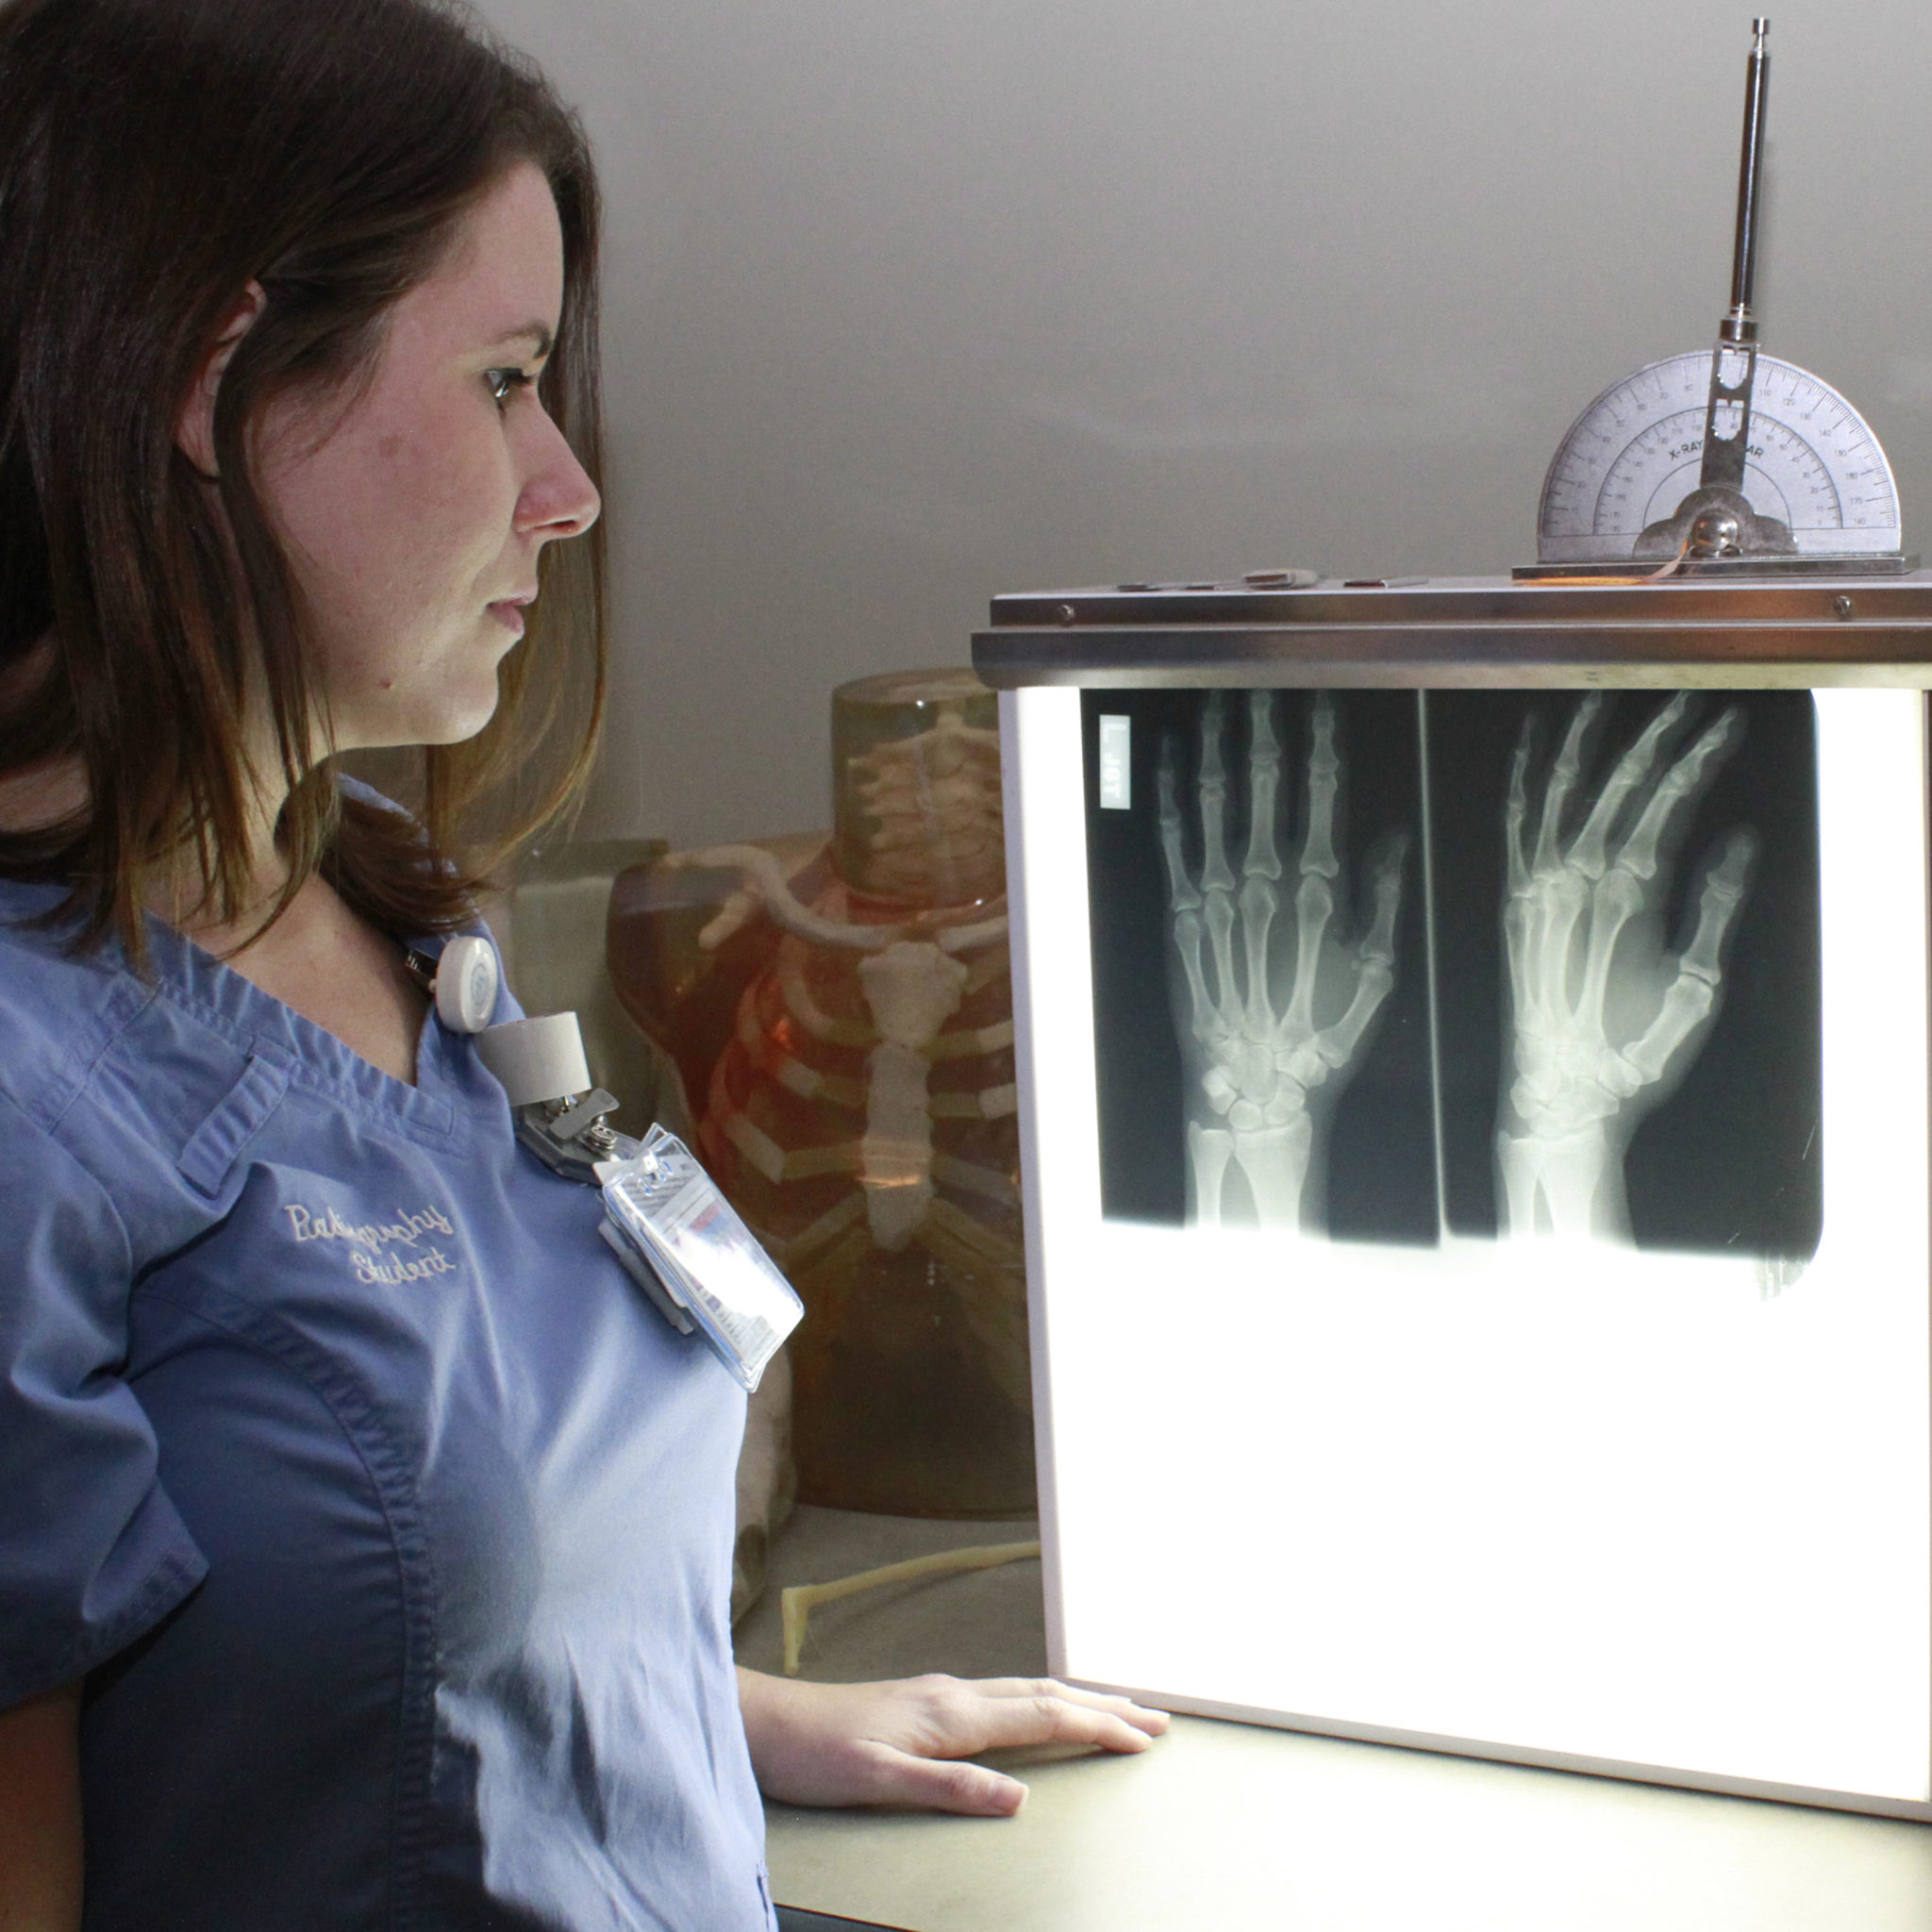 Radiography - Cleveland Community College